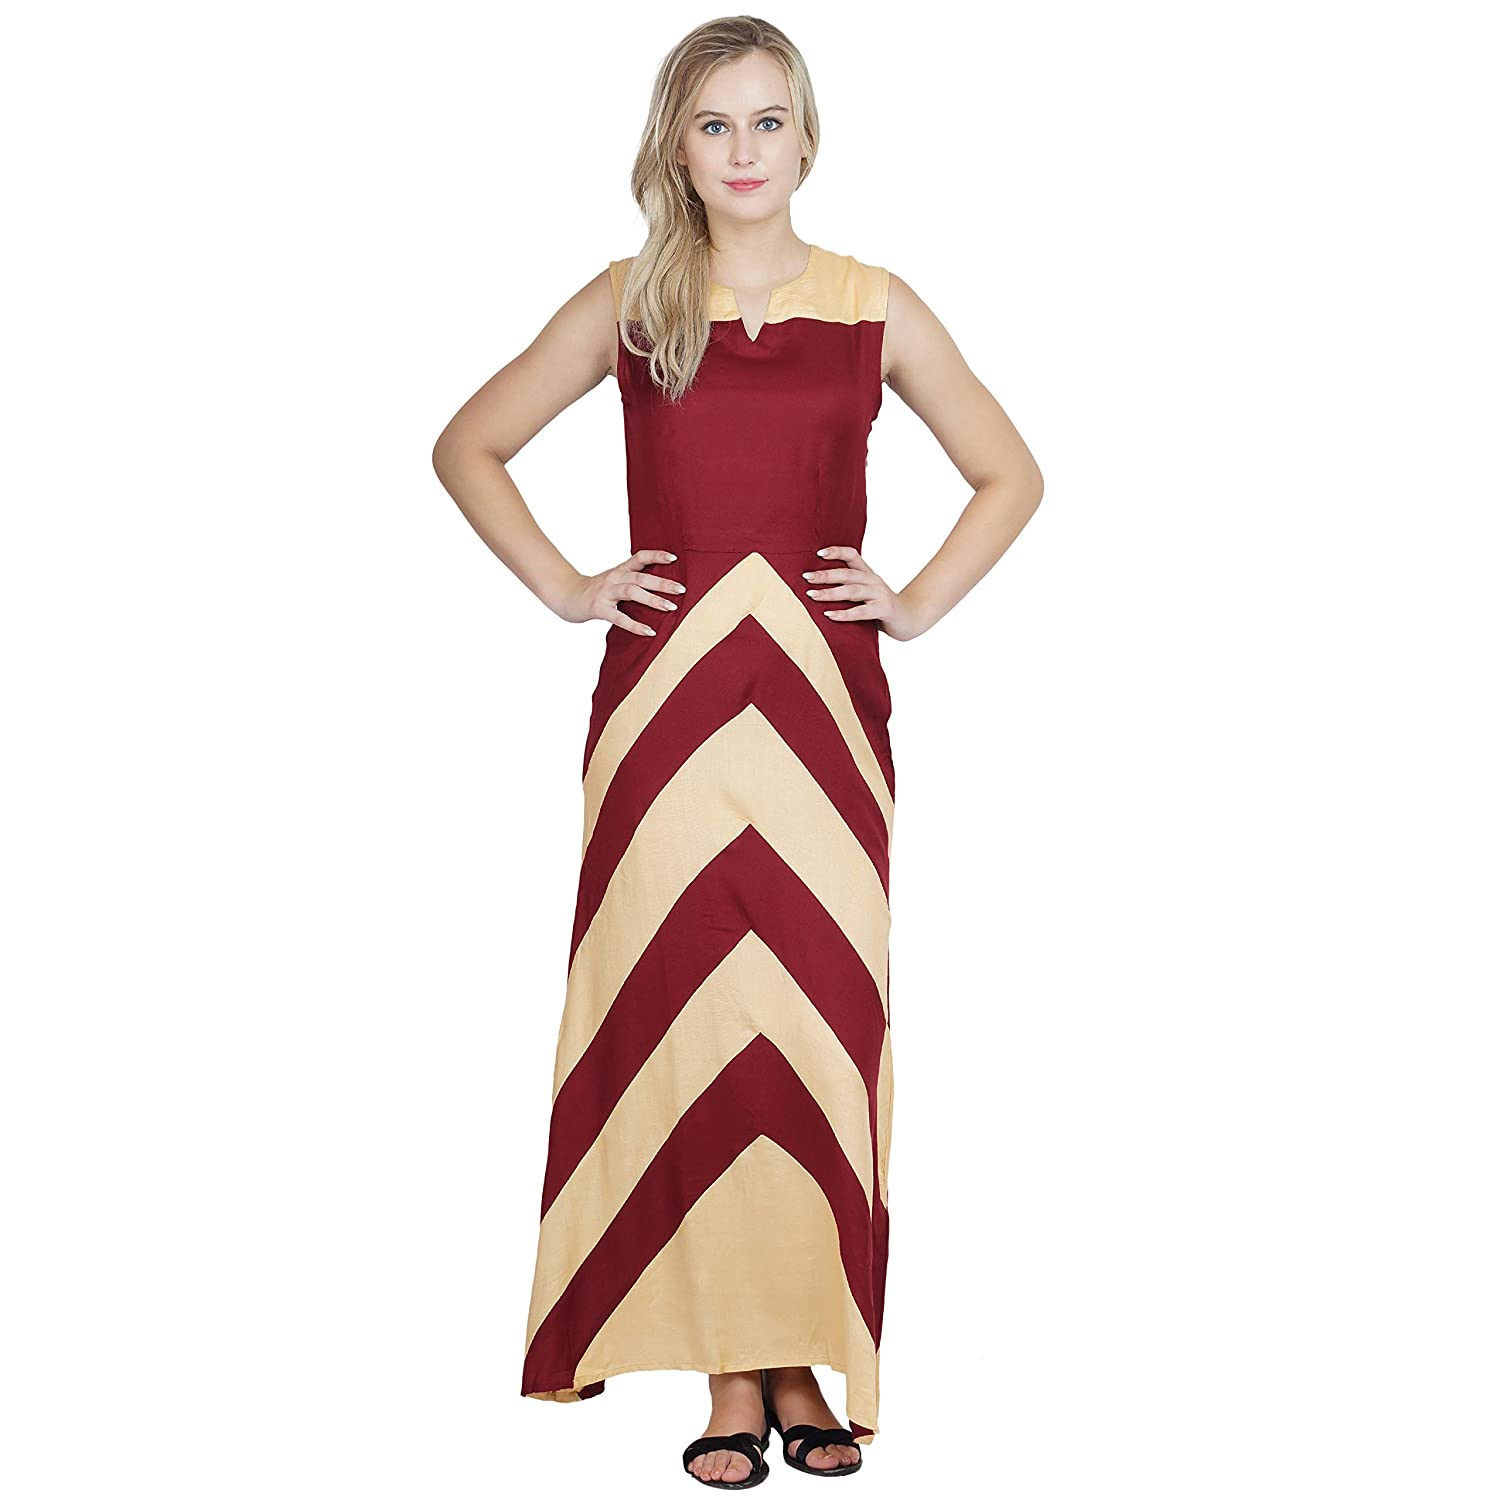 0c8e7cc47a Patrorna Blended Women s Empire Nighty Night Dress Gown in Maroon Gold (Size  S-7XL